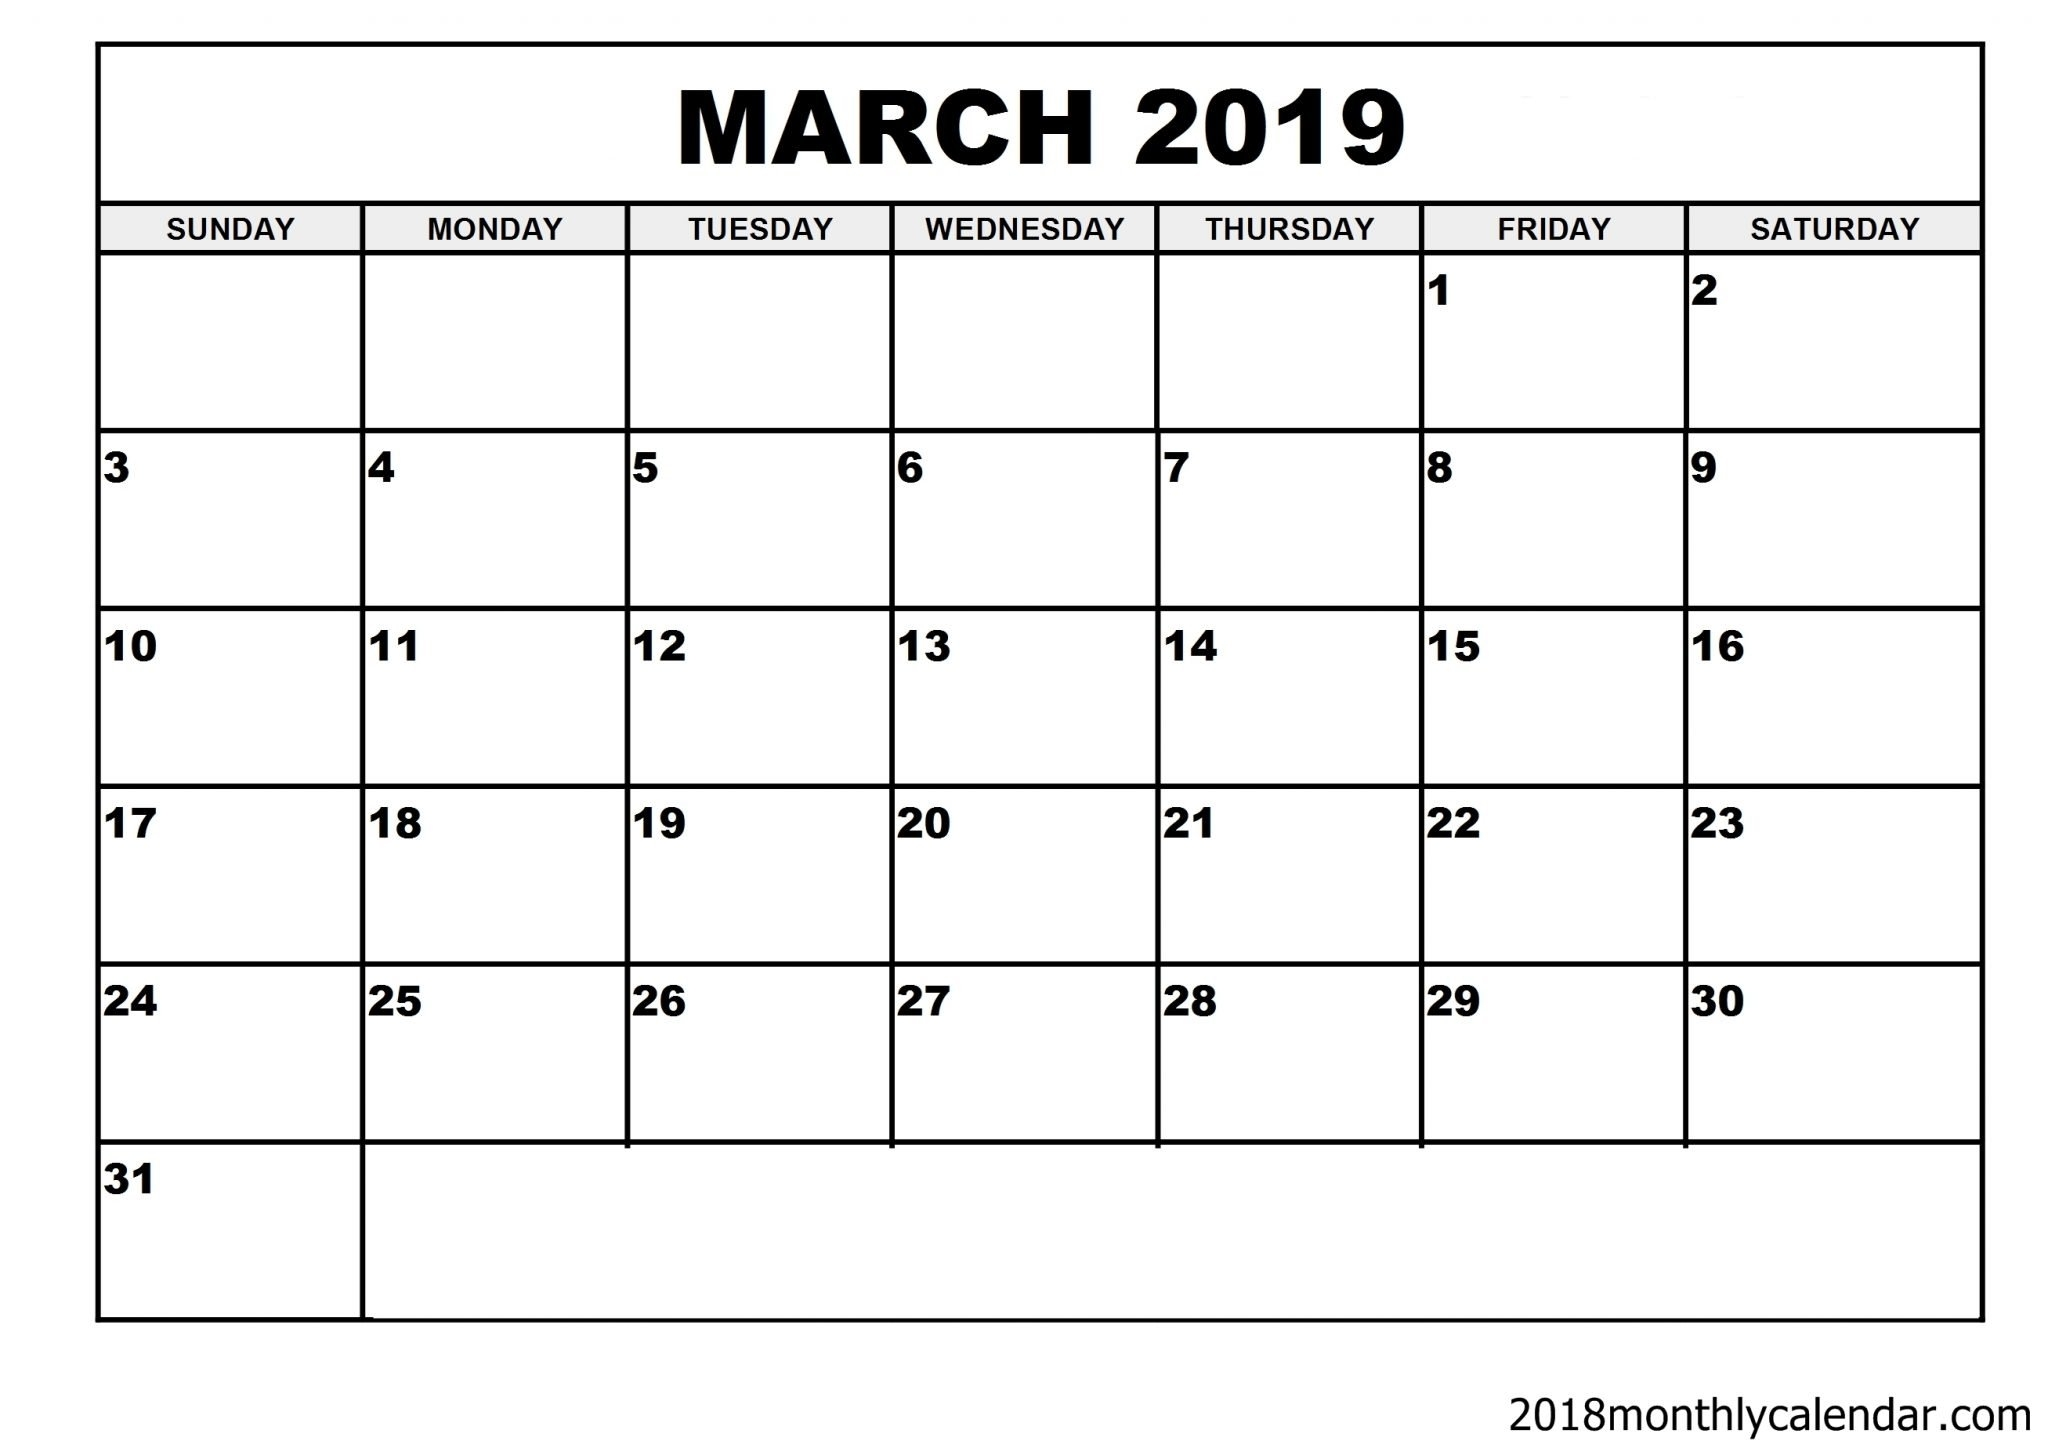 Monthly Calendar March 2019 Template Free Download March 1 2019 Calendar